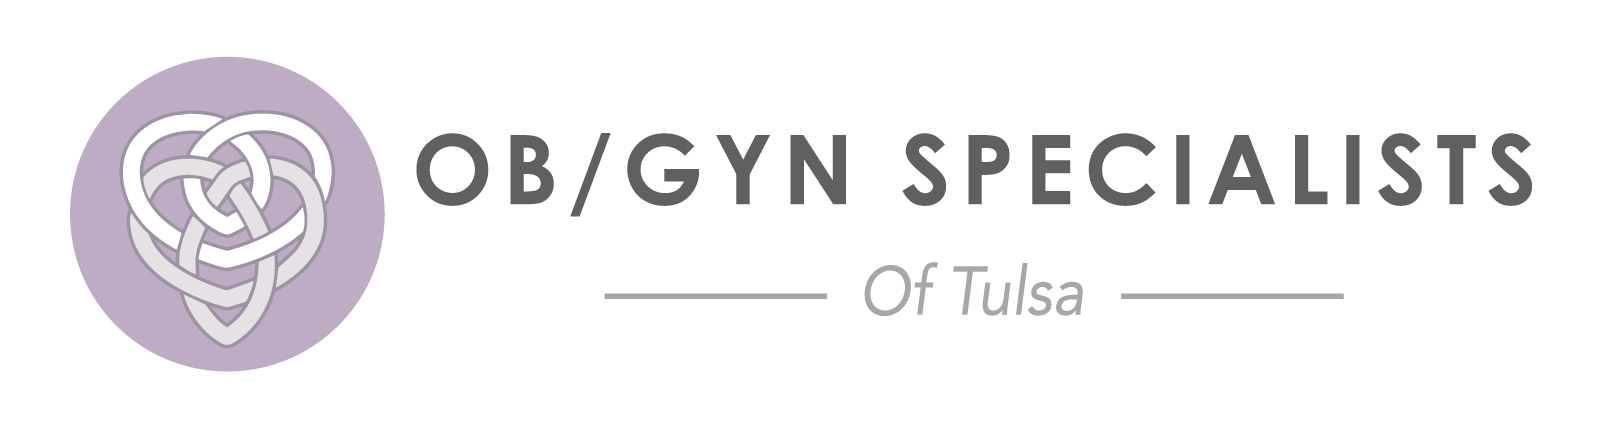 Obgyn Specialists Of Tulsa